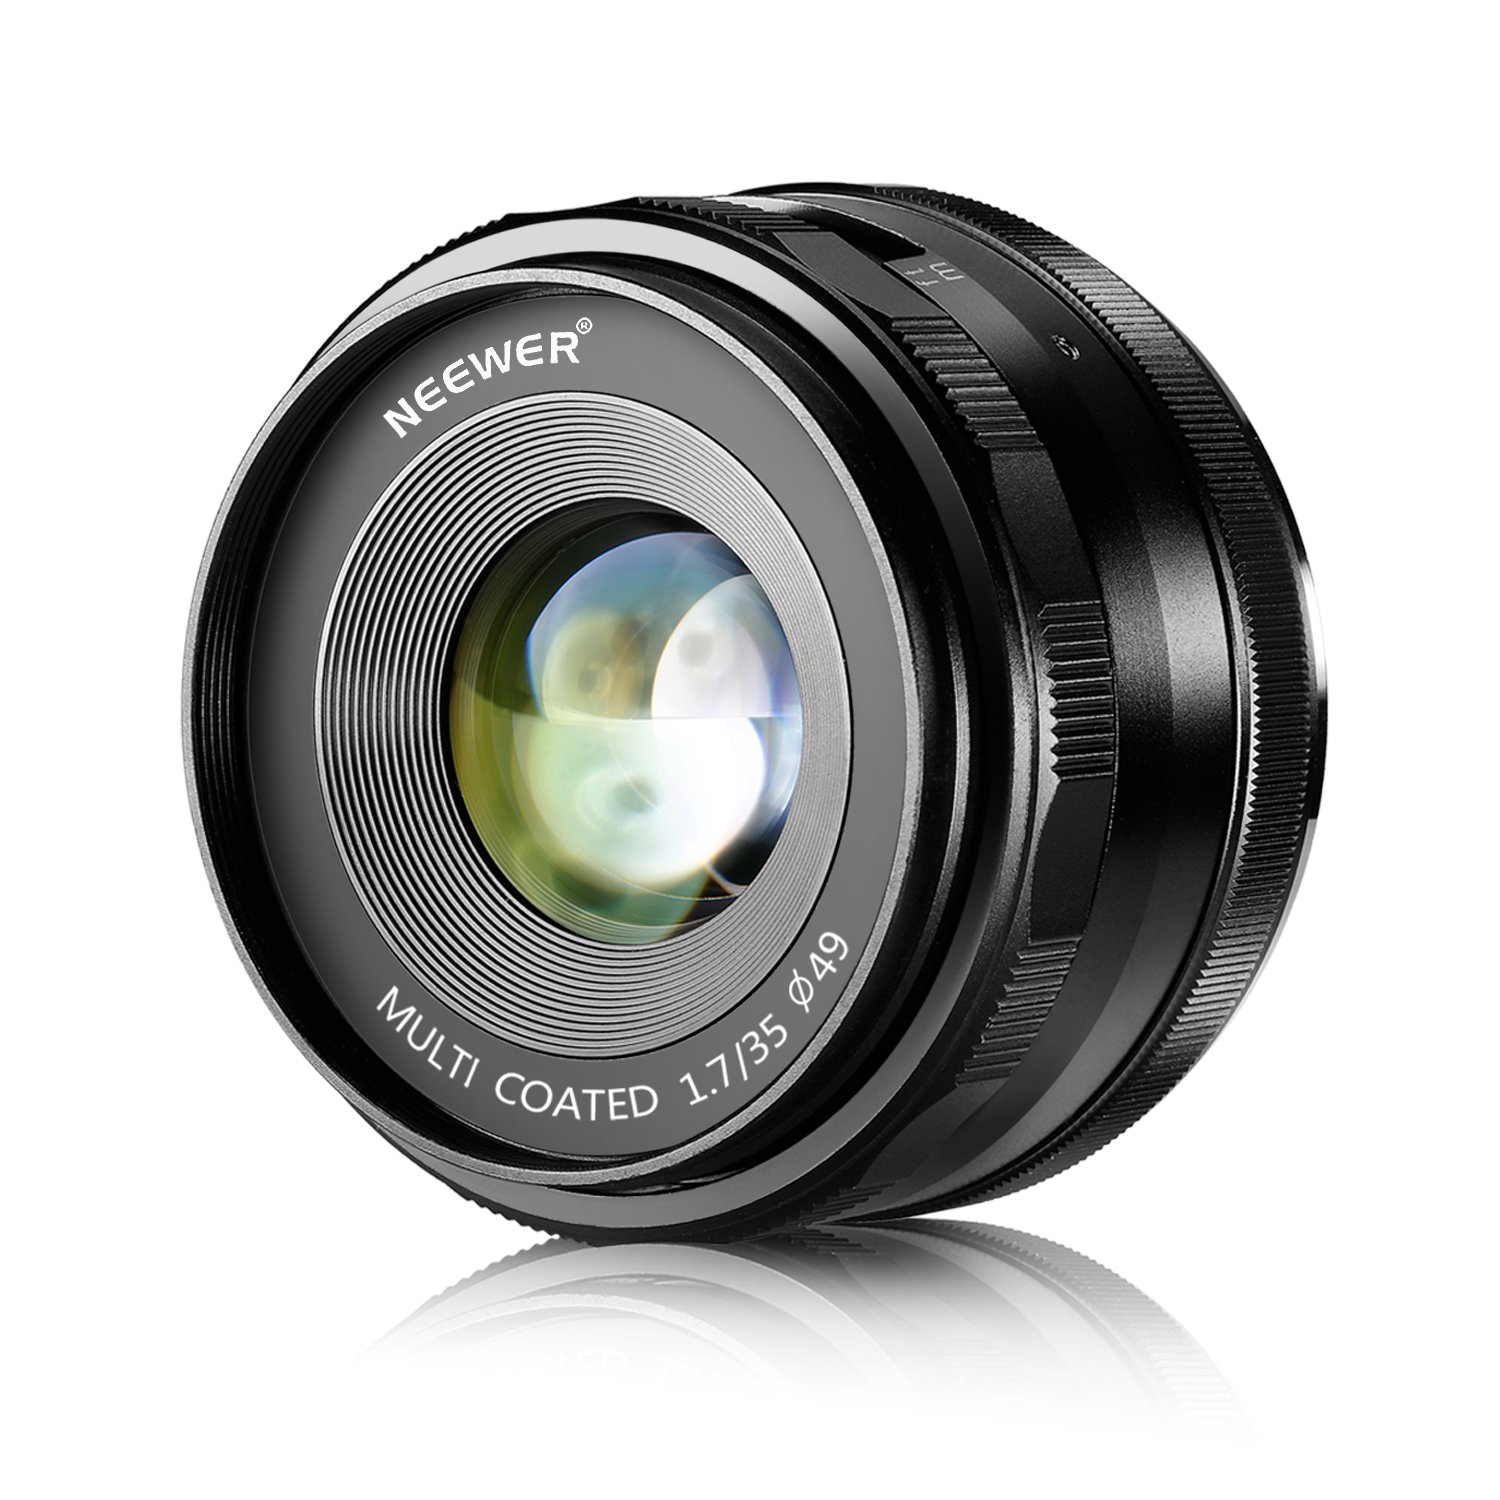 Neewer 35mm F/1.7 Large Aperture Manual Prime Sony E-mount